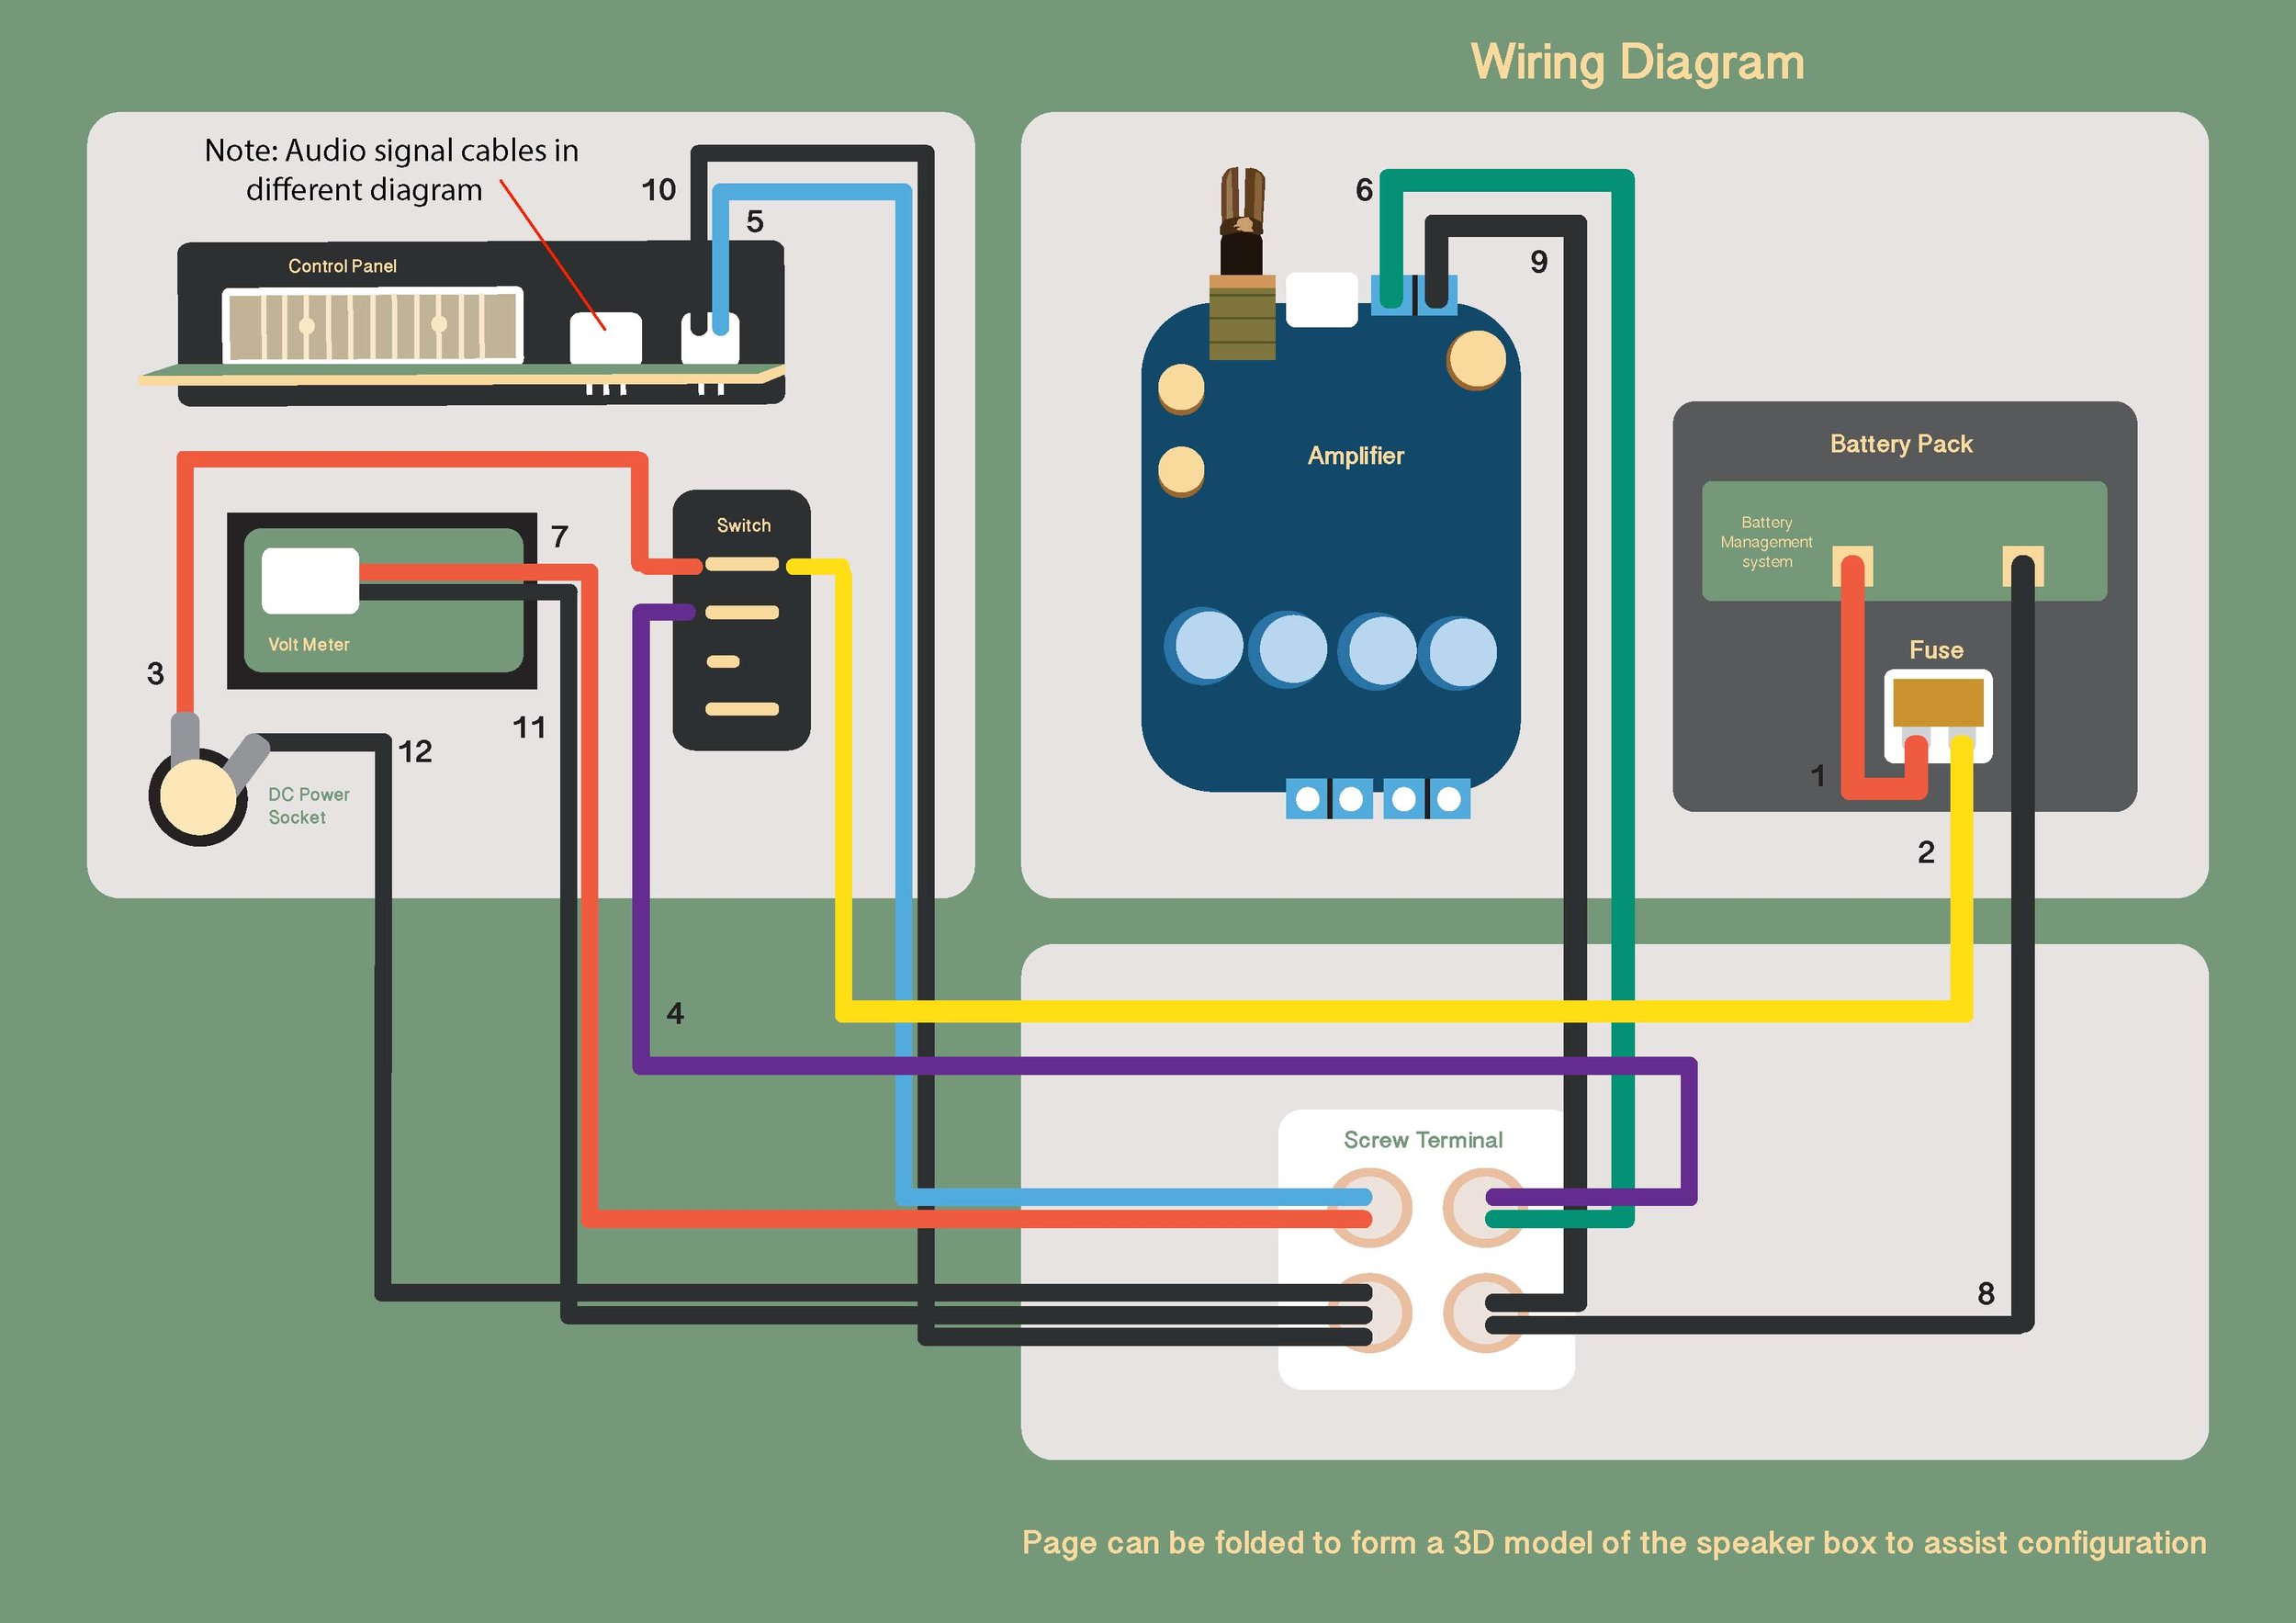 Wiring Diagram: Does not included audio input signal cables.